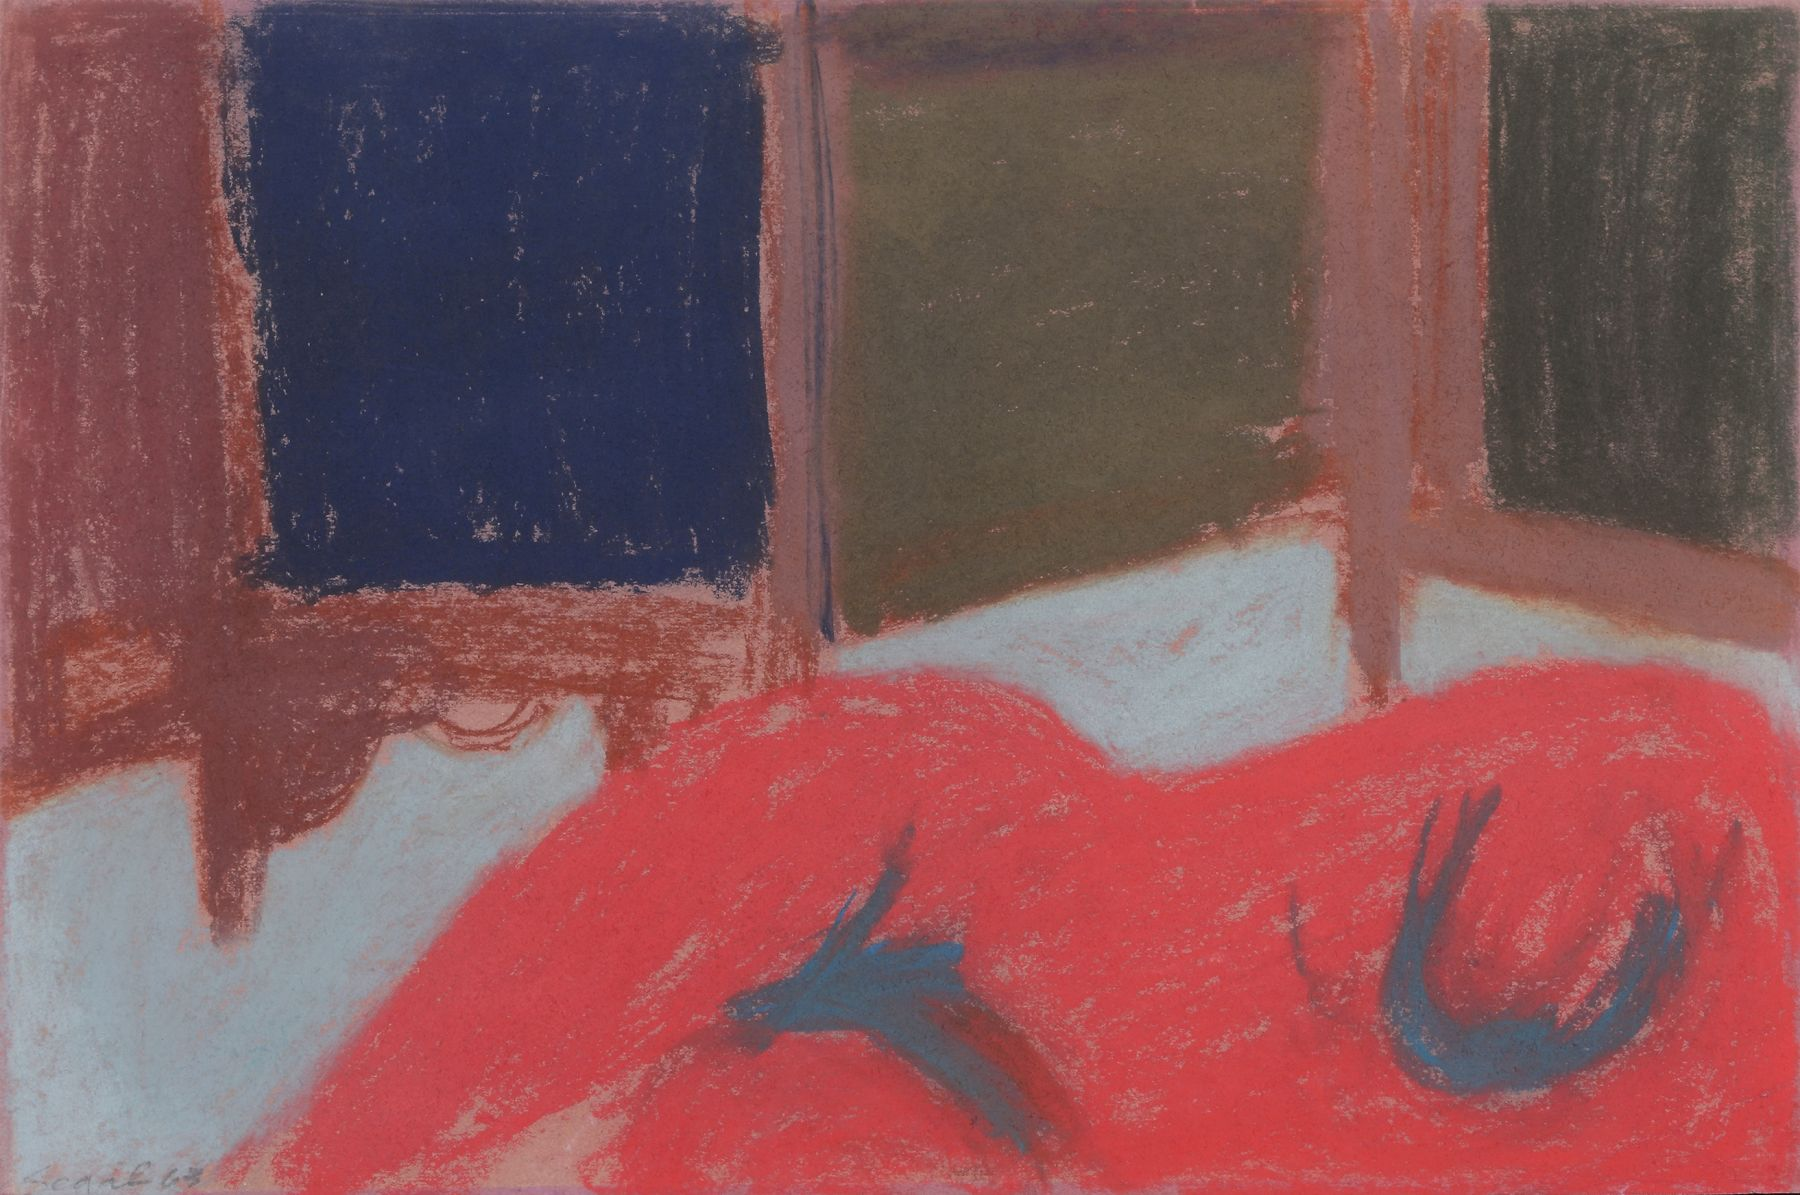 George Segal, Untitled (Red Nude), 1963, Pastel on paper 12 x 18 inches